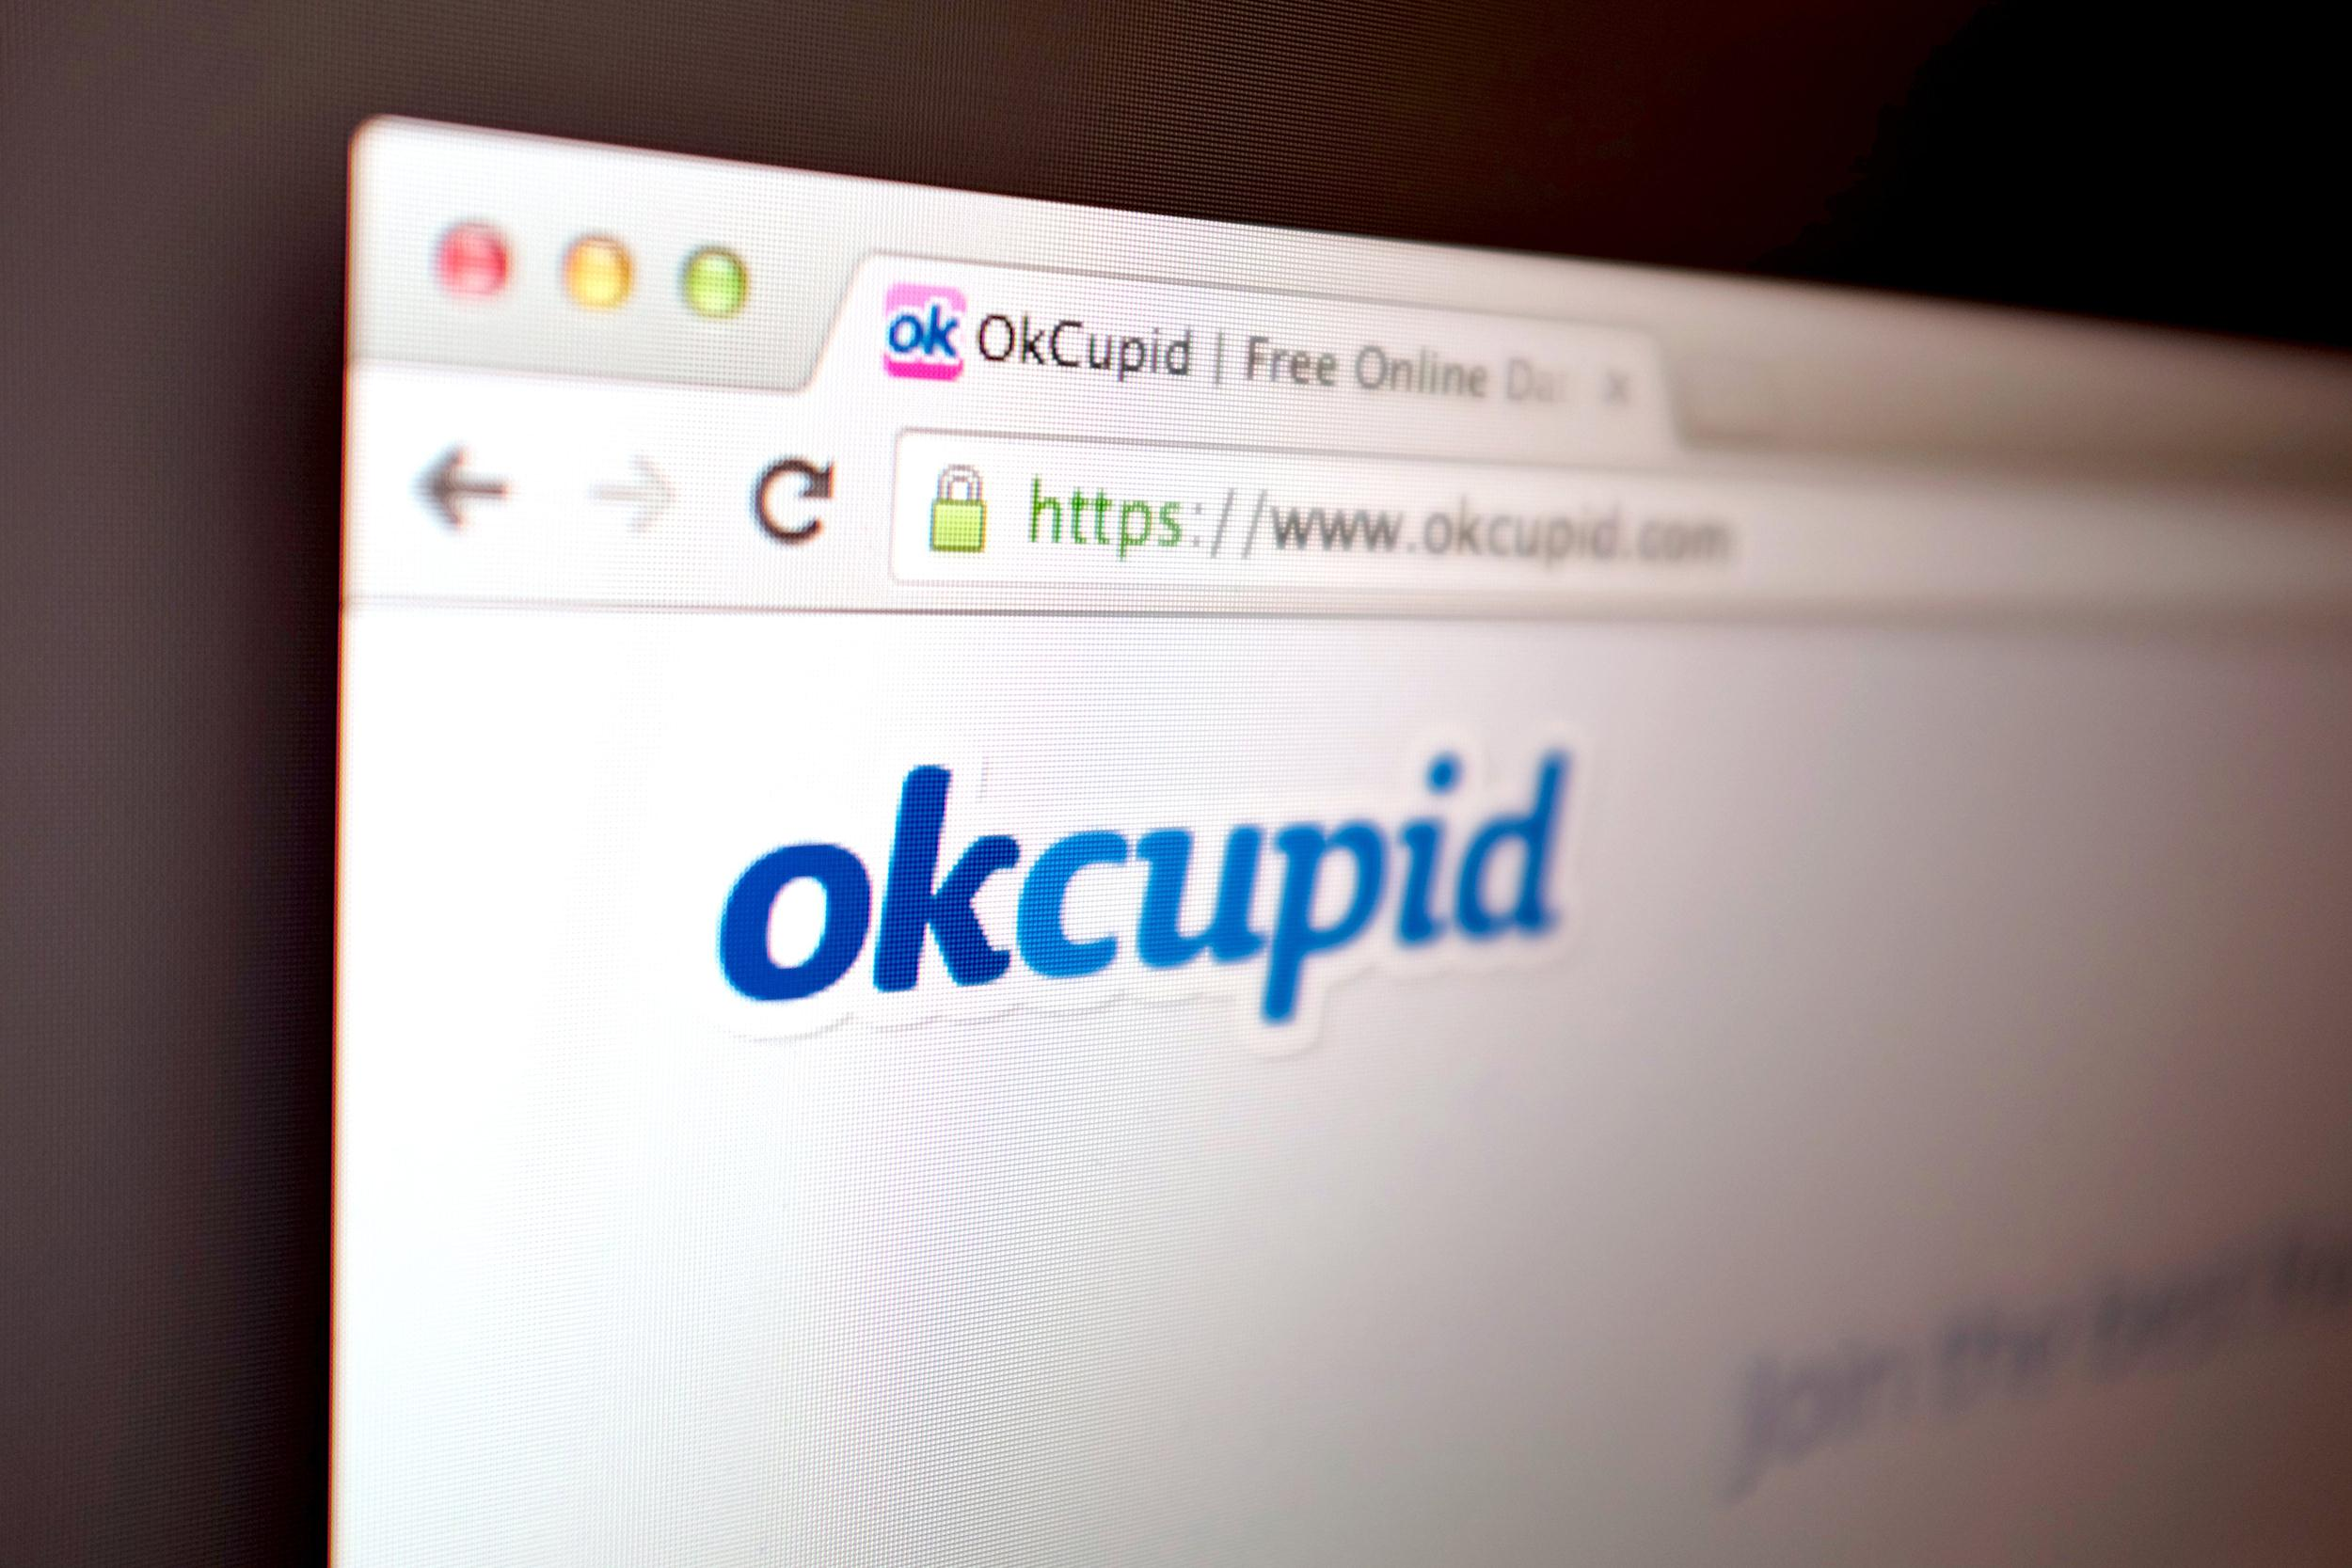 Find someone on okcupid